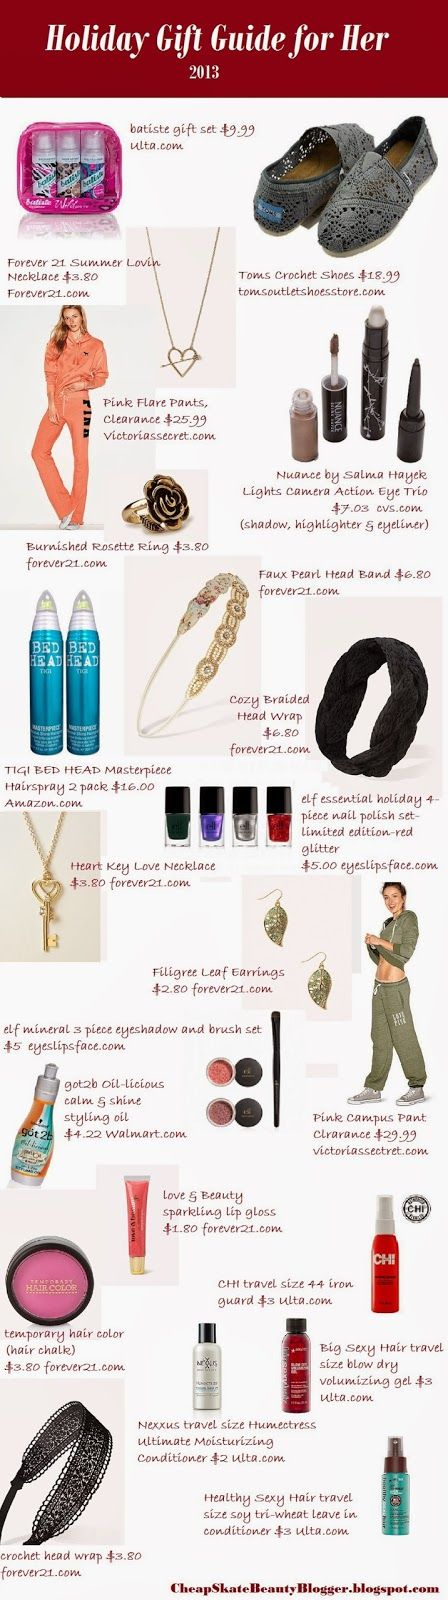 Best Gift Guide for her, teens or 20 somethings, best deals on accessories, hair and makeup gifts.